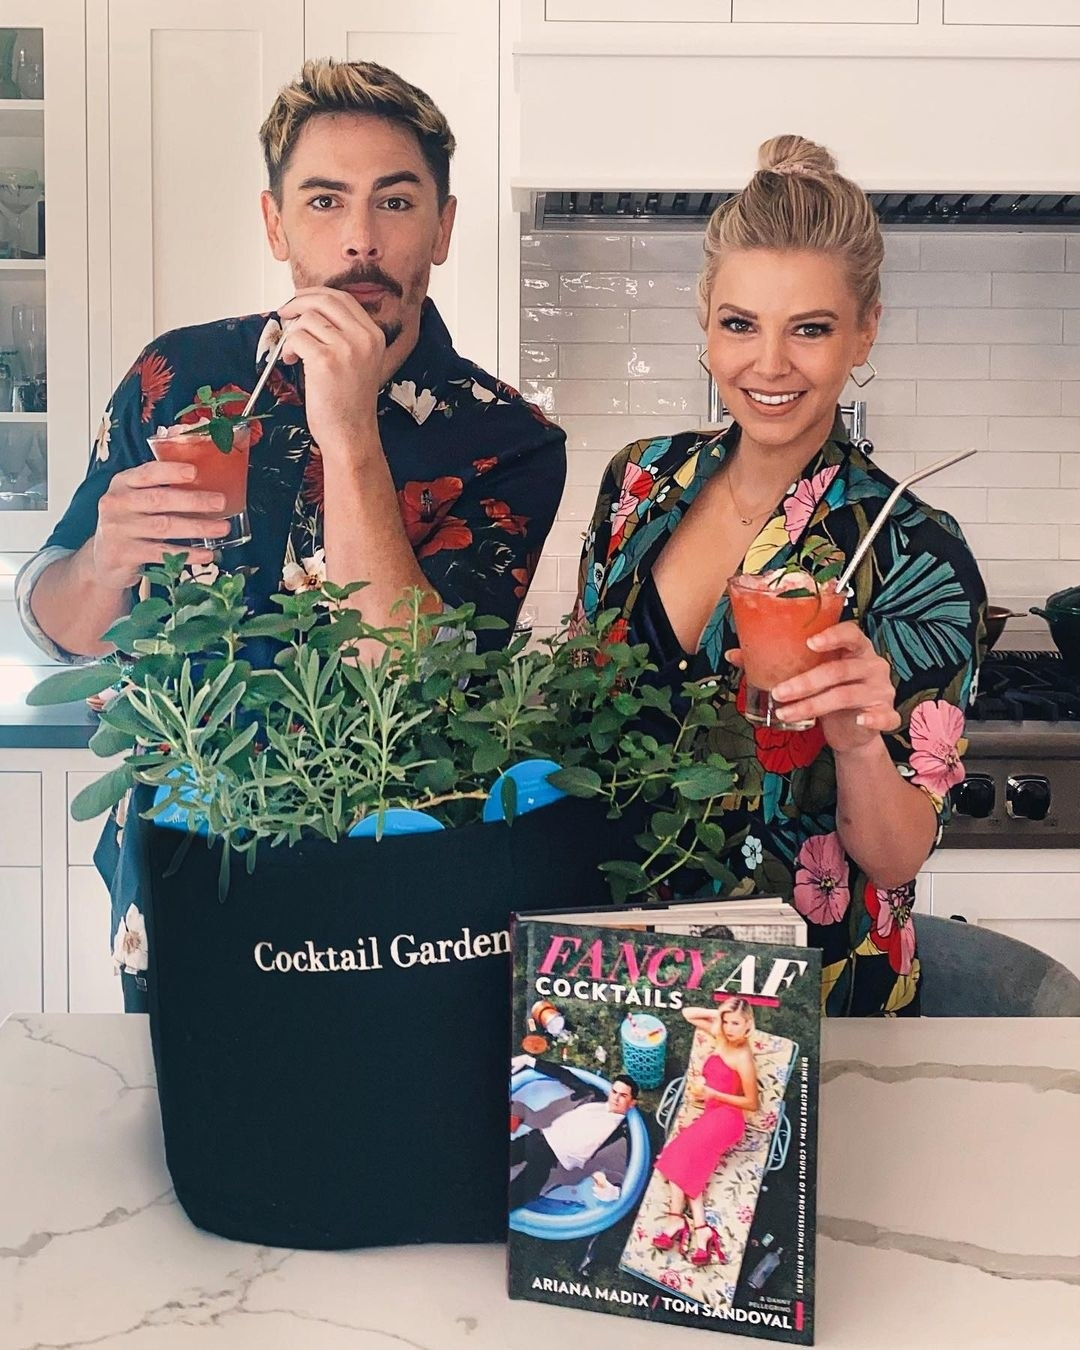 tom and ariana holding drinks with a cocktail garden kit and their book in front of them